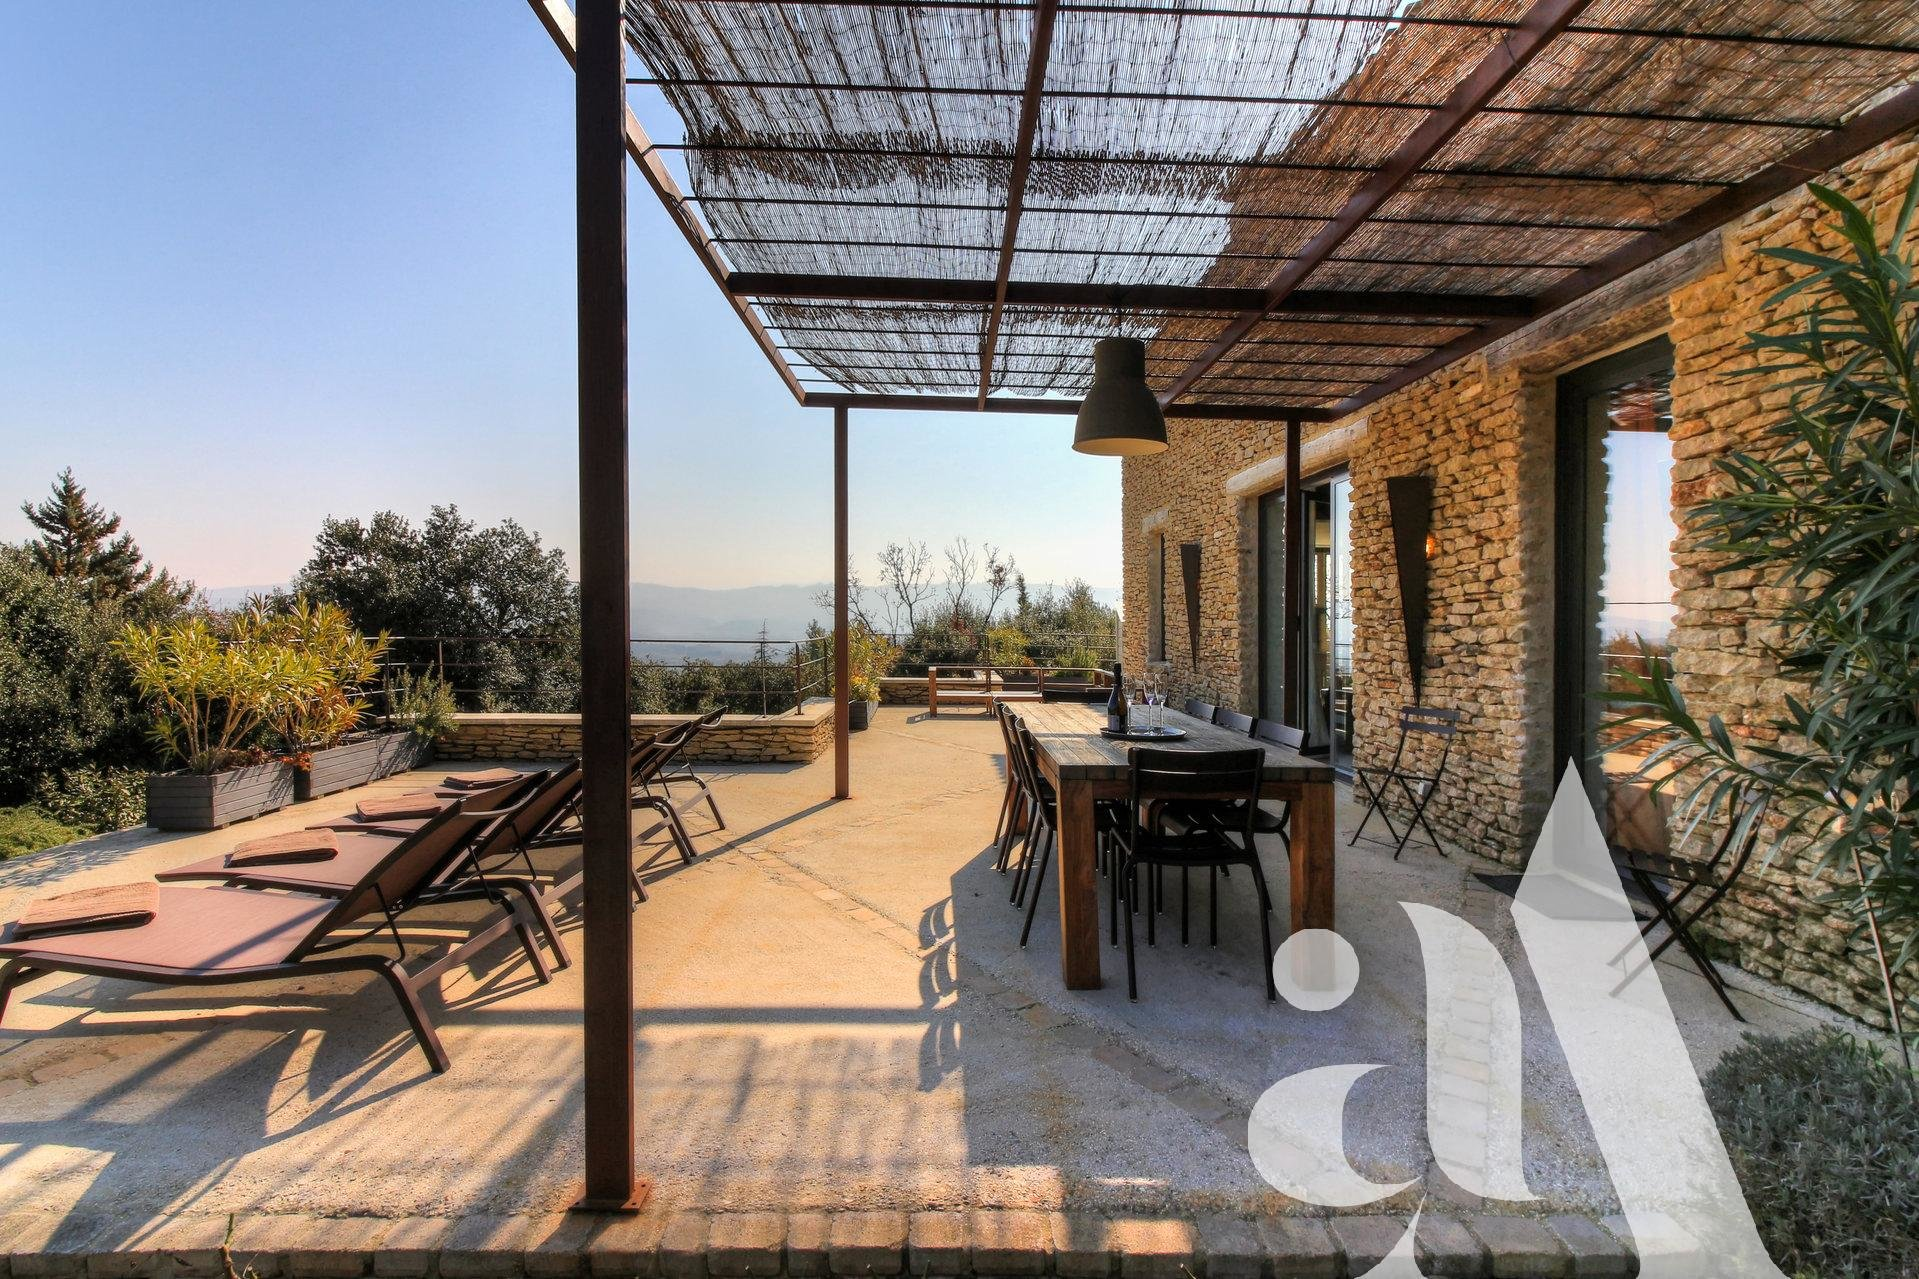 MAS D'OIKOS- CABRIERES - LUBERON - 4 bedrooms - 8 people